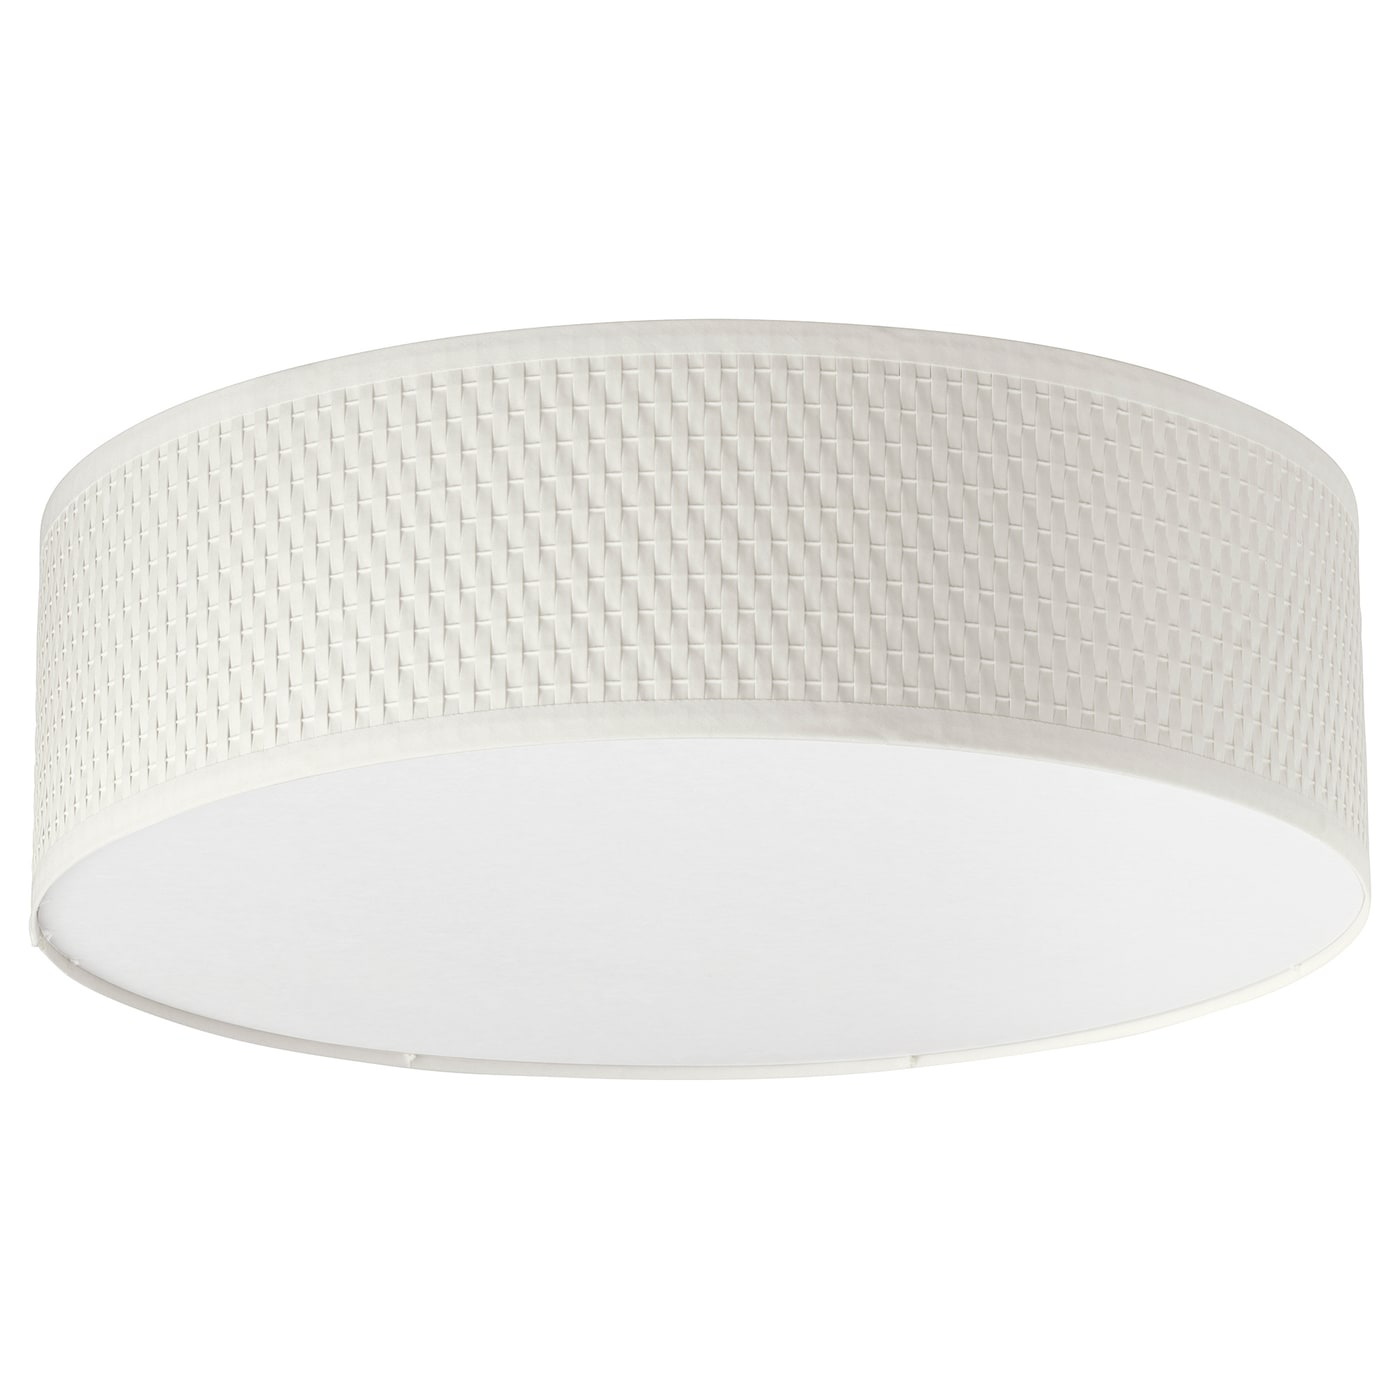 IKEA ALÄNG ceiling lamp Diffused light that provides good general light in the room.